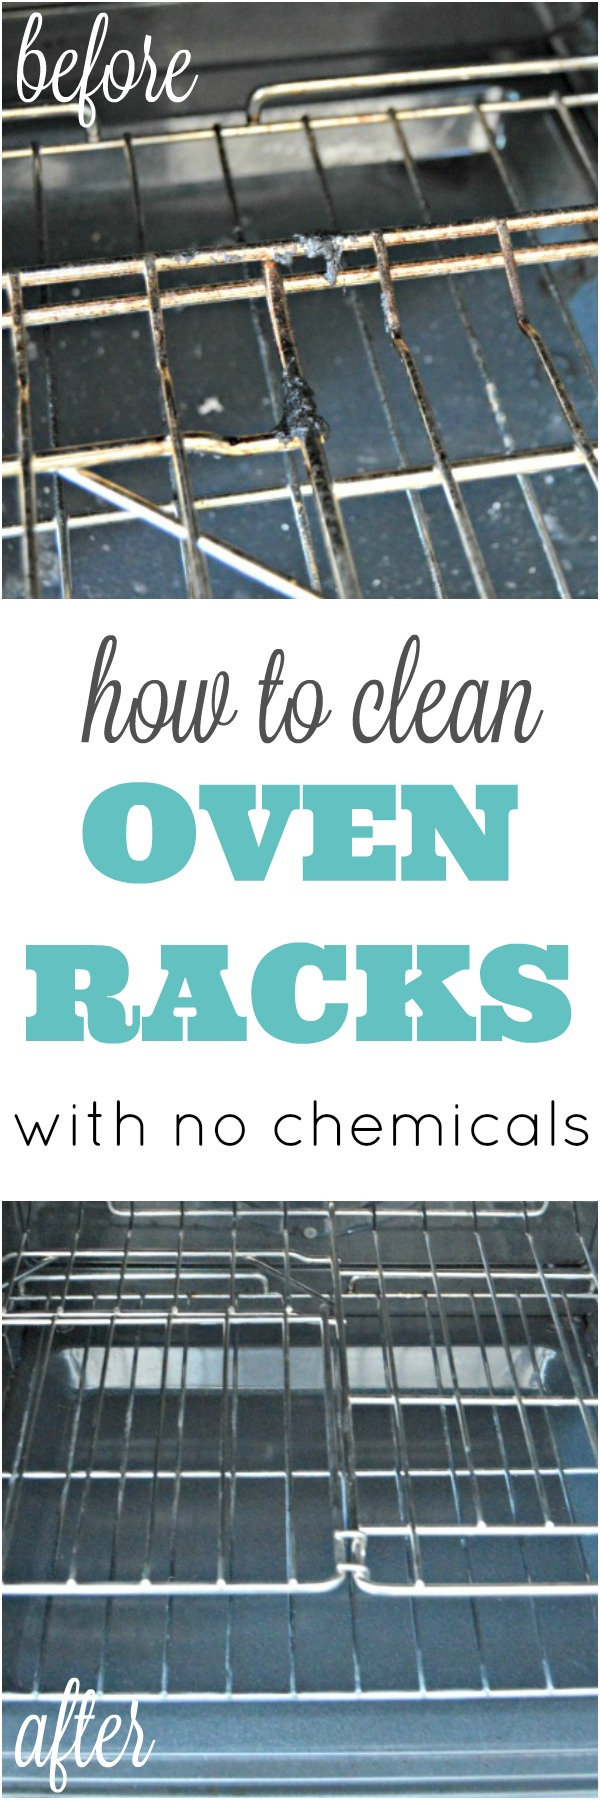 How To Clean Oven Racks with No Harmful Chemicals